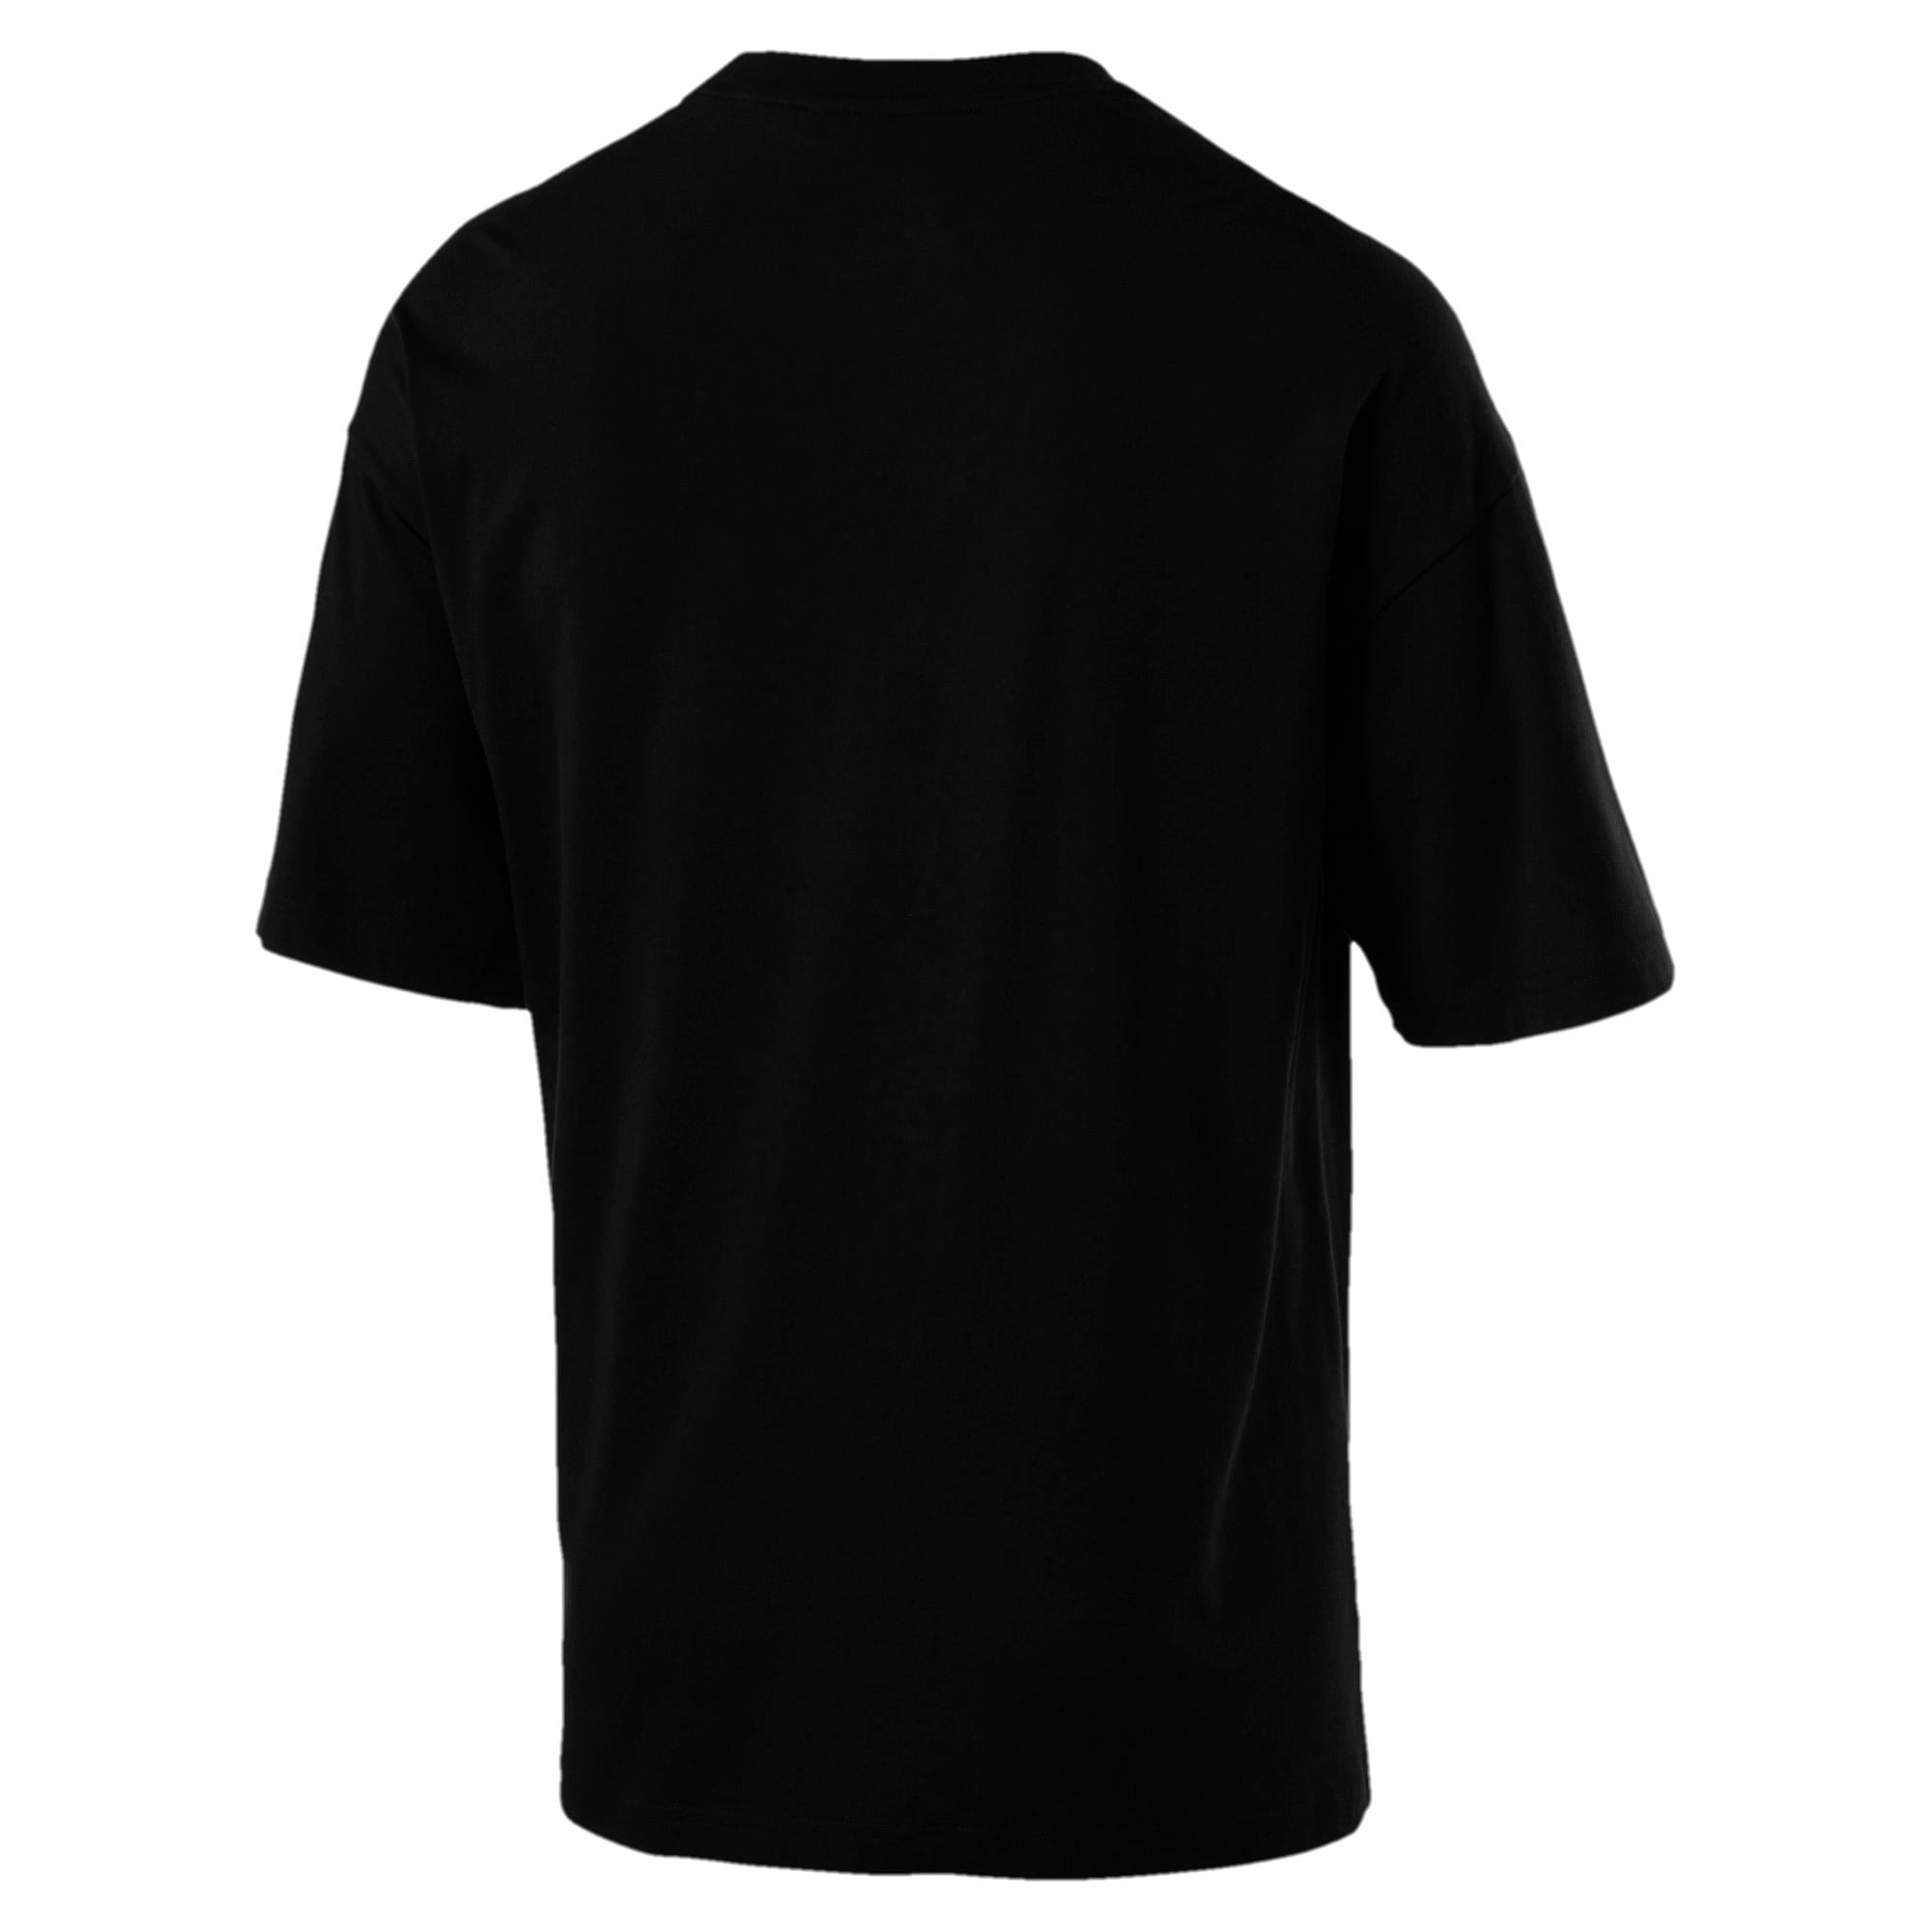 Thumbnail 2 of Chains Men's Tee, Puma Black-1, medium